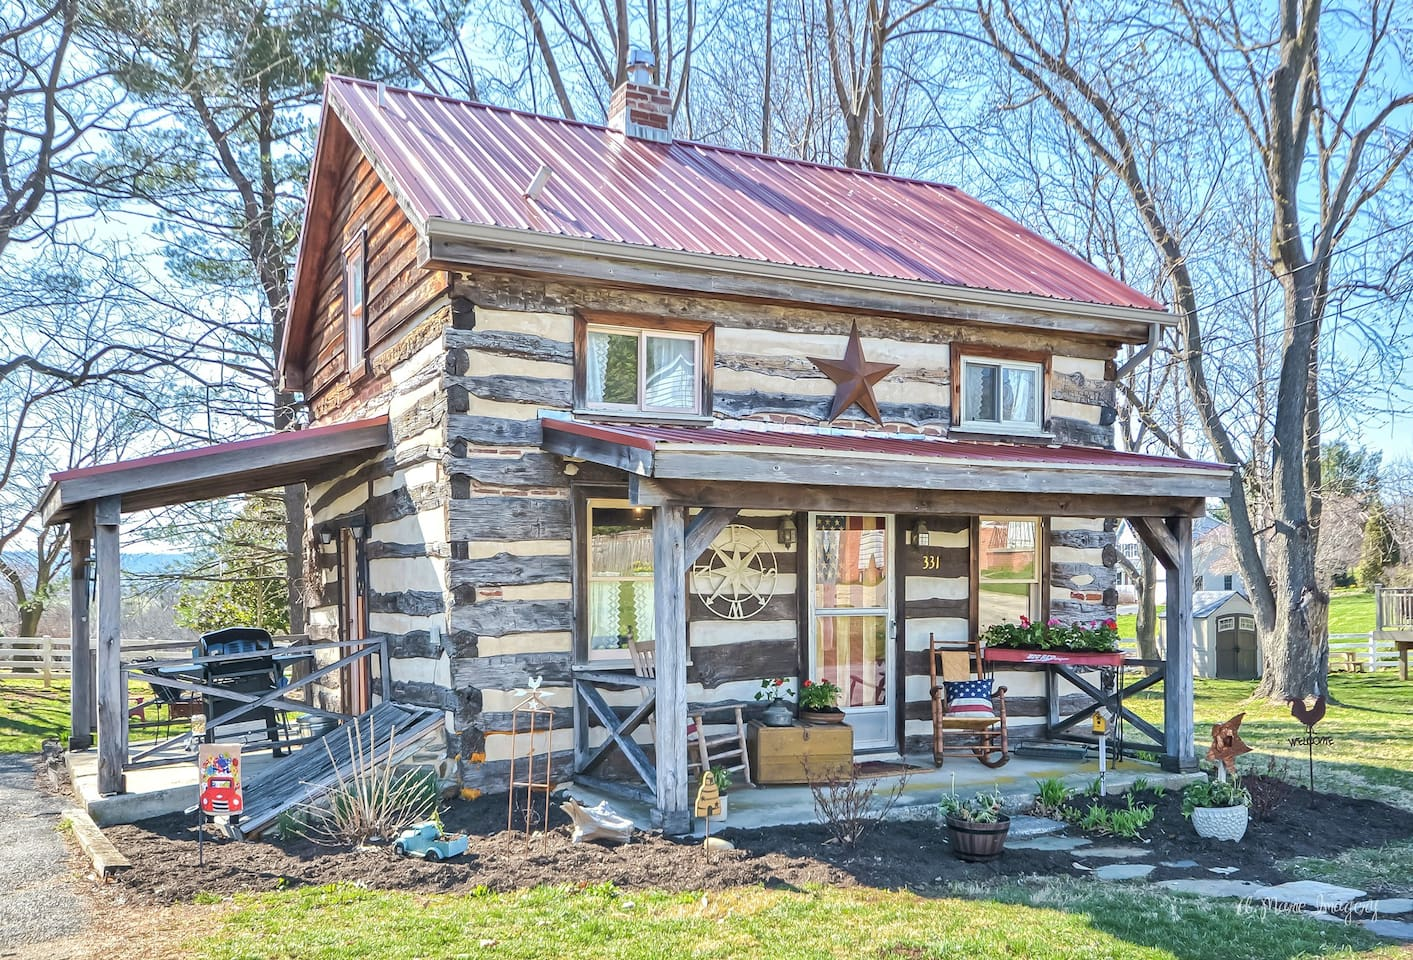 Welcome to our cabin getaway in small town America!